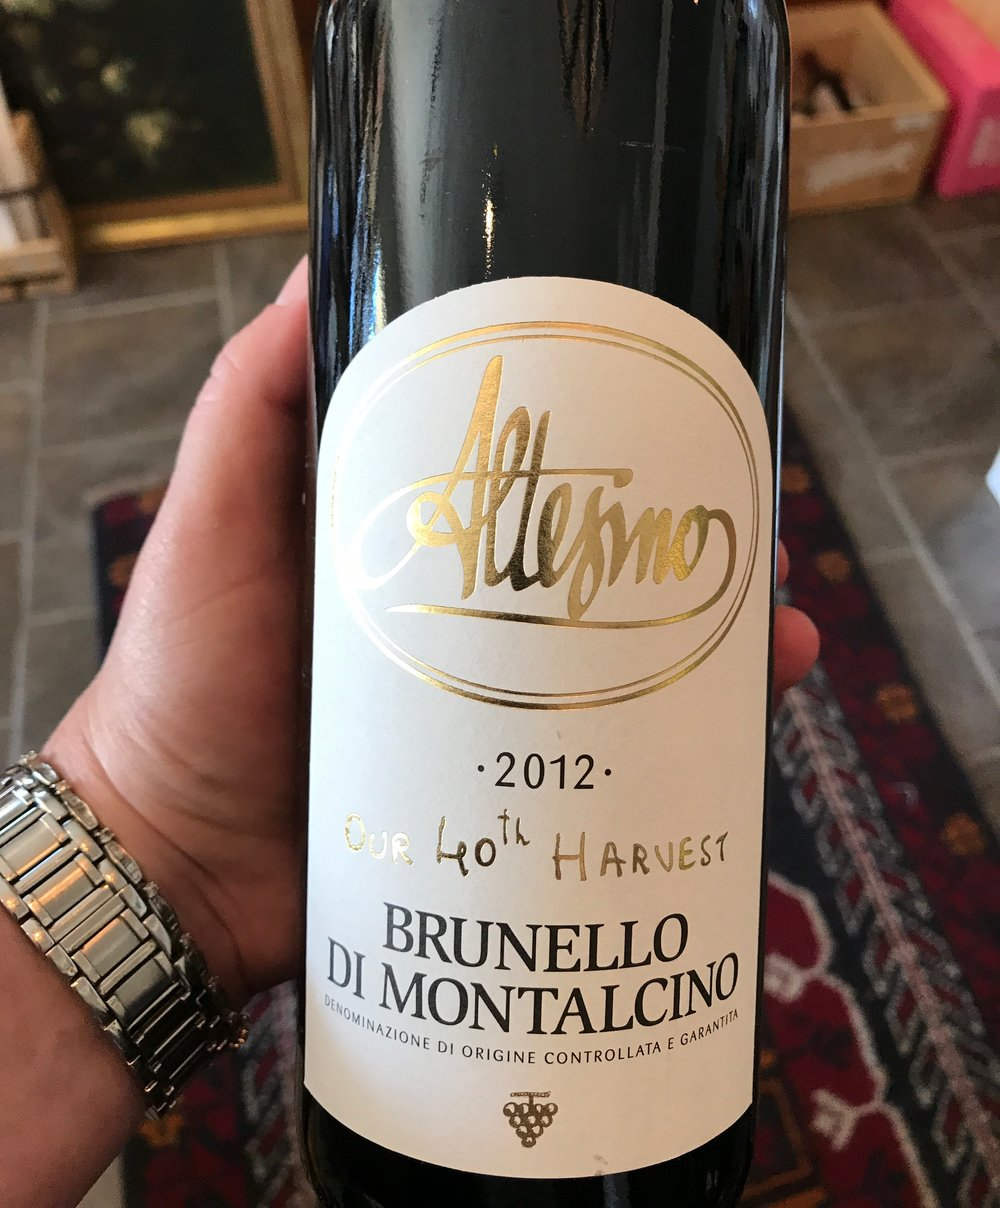 2012 Altesino Brunello di Montalcino, Tuscany - 96 points Wine Spectator  $57.99  Cherry, leather and iron notes mark this suave, elegant red. A bit reticent now, but the fruit is fresh and long on the finish. The dense tannins leave a mouthcoating impression, but this opens up beautifully over a few hours. Best from 2021 through 2035.   Altesino embodies tradition and history, and at the same time perceptive innovation. Where international renown for Brunello di Montalcino has nudged many winemakers towards conservatism, Altesino has always blazed new wine trails. Founded in 1972 by Milanese entrepreneur Giulio Consonno, in 1975 the winery was the first in Brunello to introduce the concept of single-vineyard crus with its famous Montosoli bottling. The winery was also the first to experiment with French barrique in 1979, yielding wines with more fruit and complexity – a critical turning point in Brunello's history.